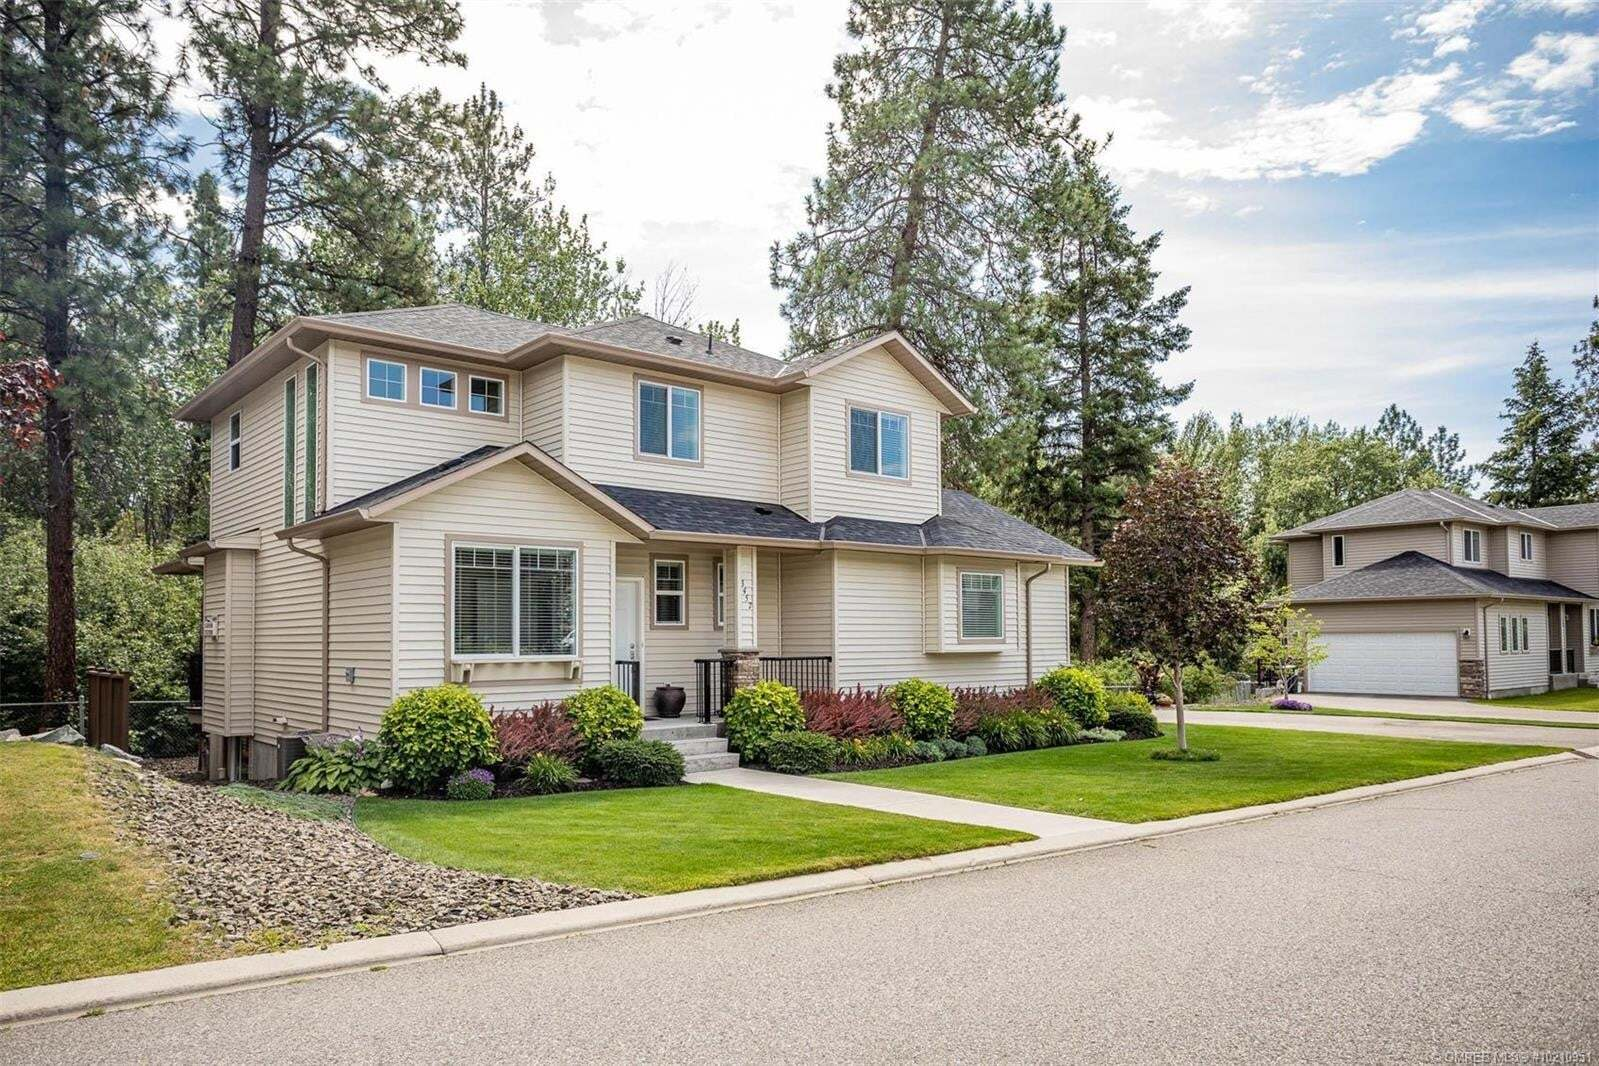 House for sale at 3457 Creekview Cres West Kelowna British Columbia - MLS: 10210951